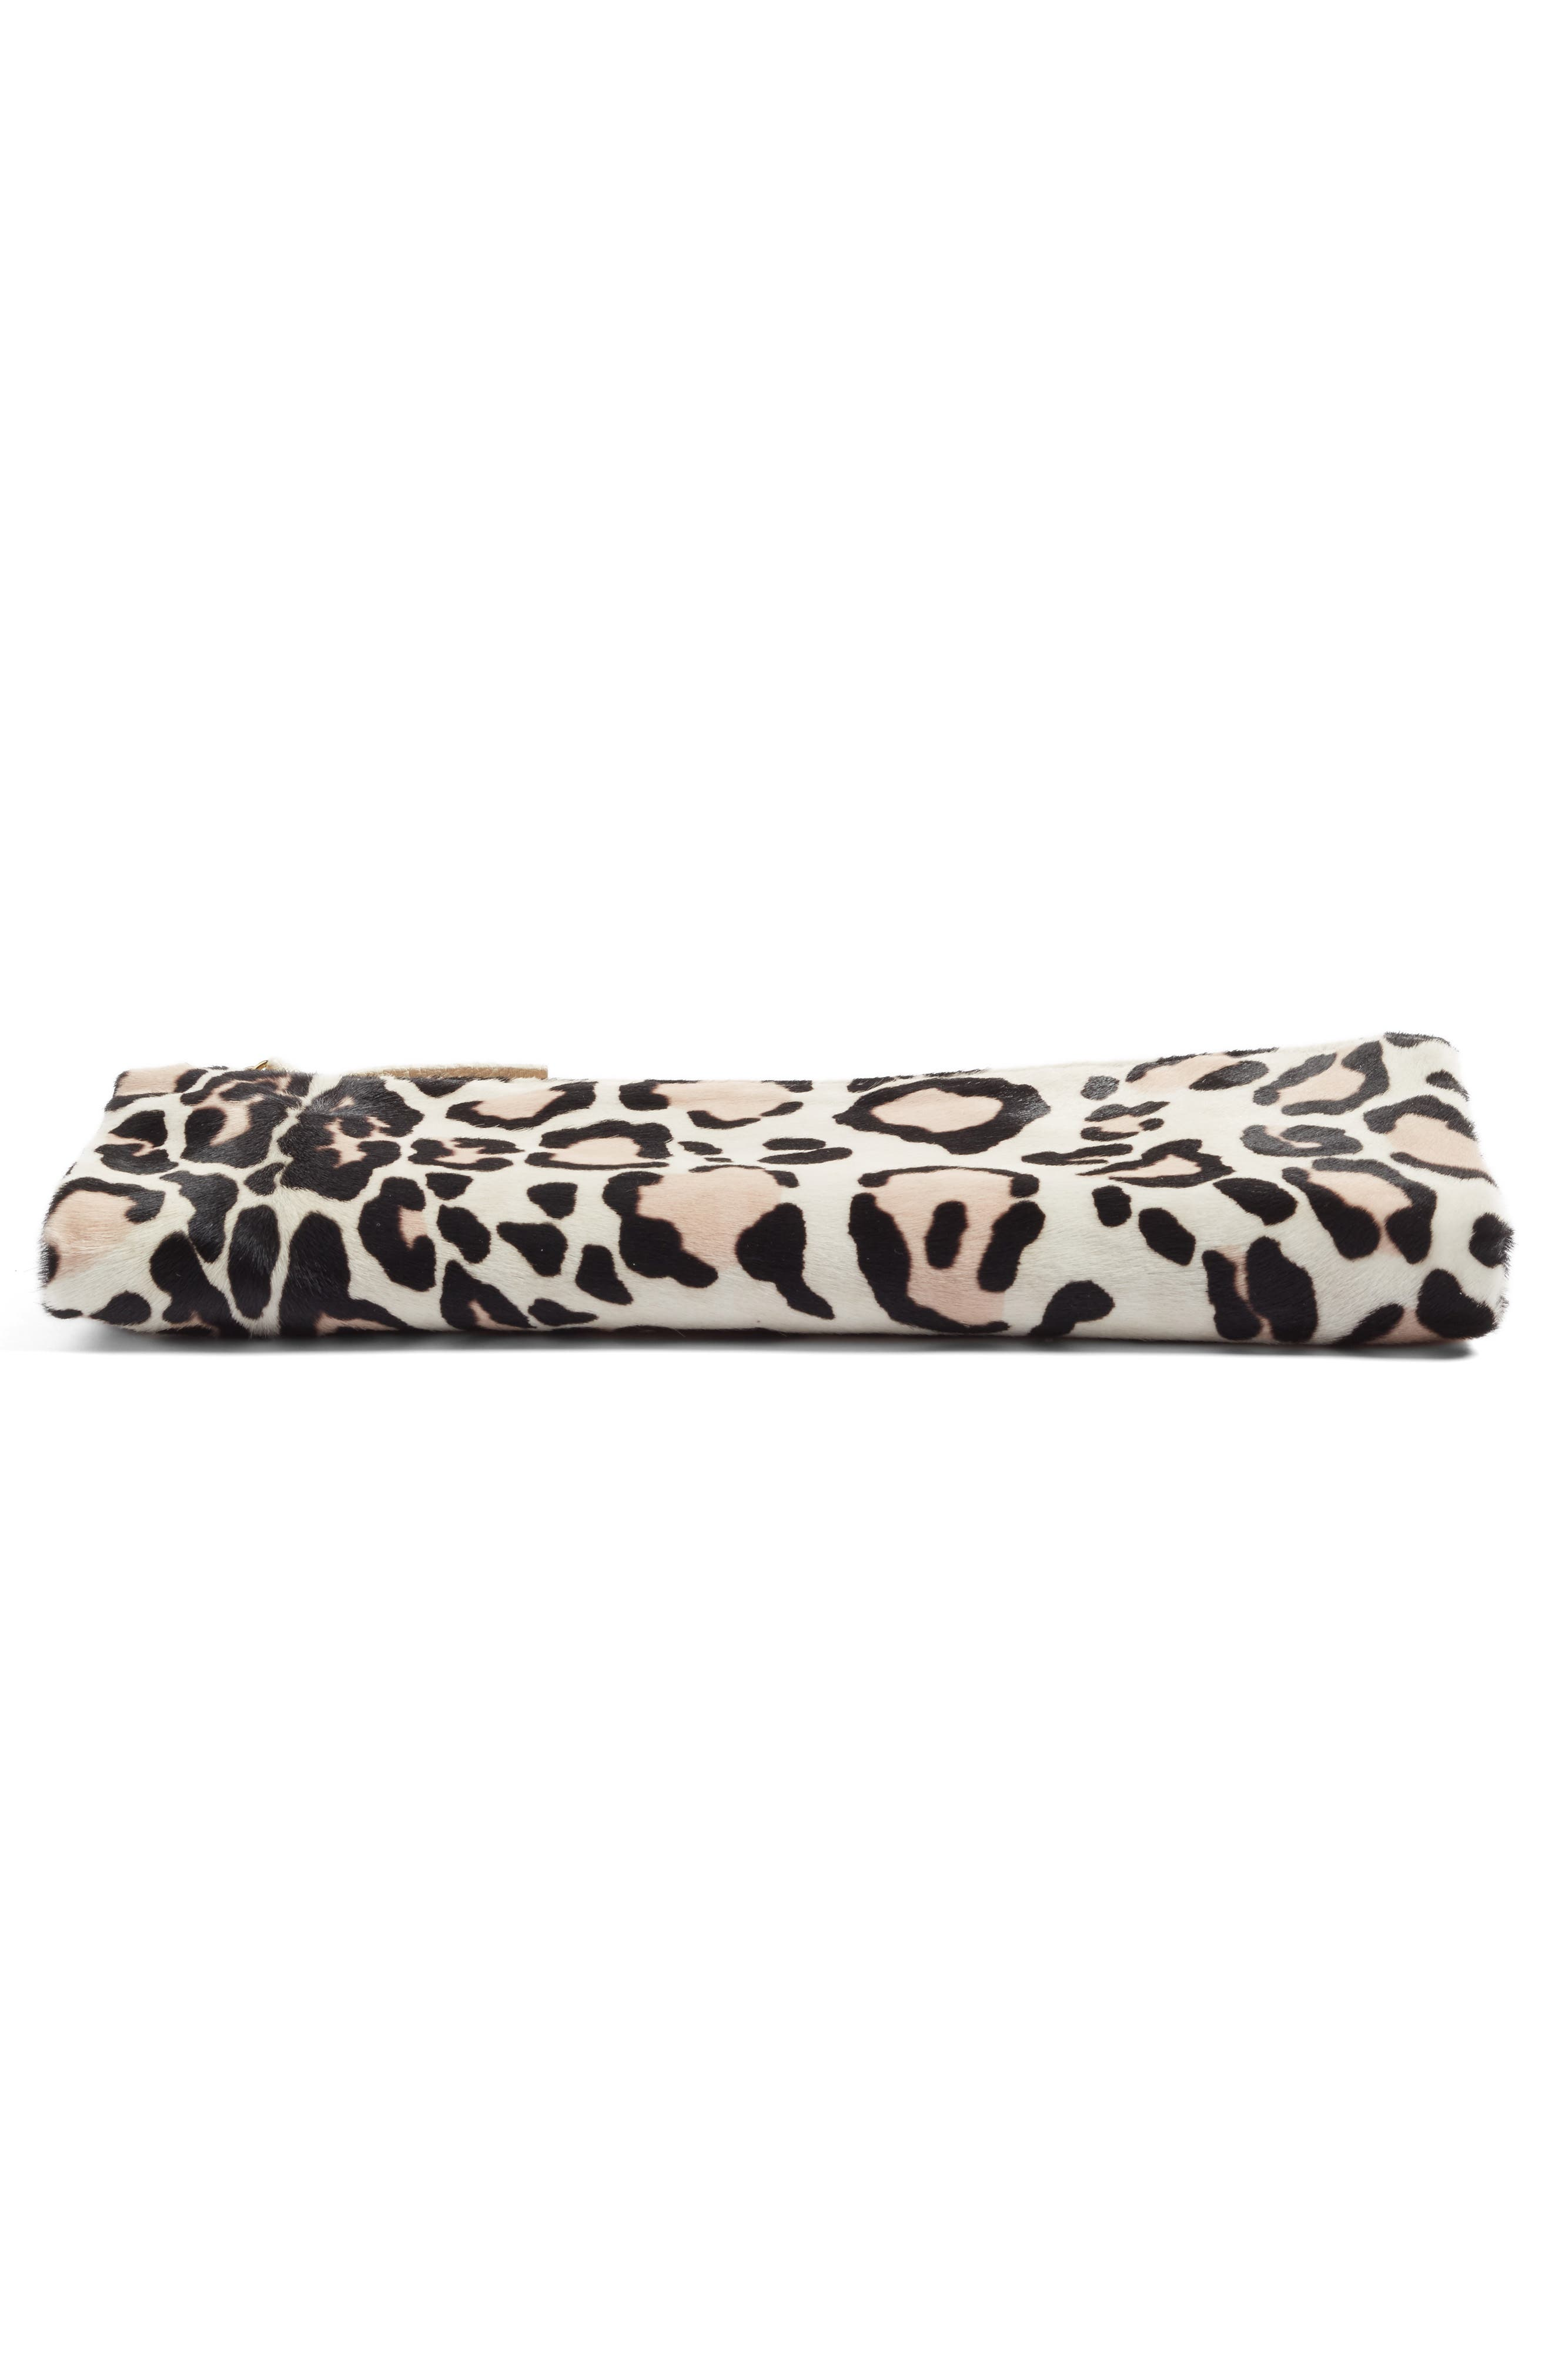 CLARE V., Genuine Calf Hair Foldover Clutch, Alternate thumbnail 5, color, 900